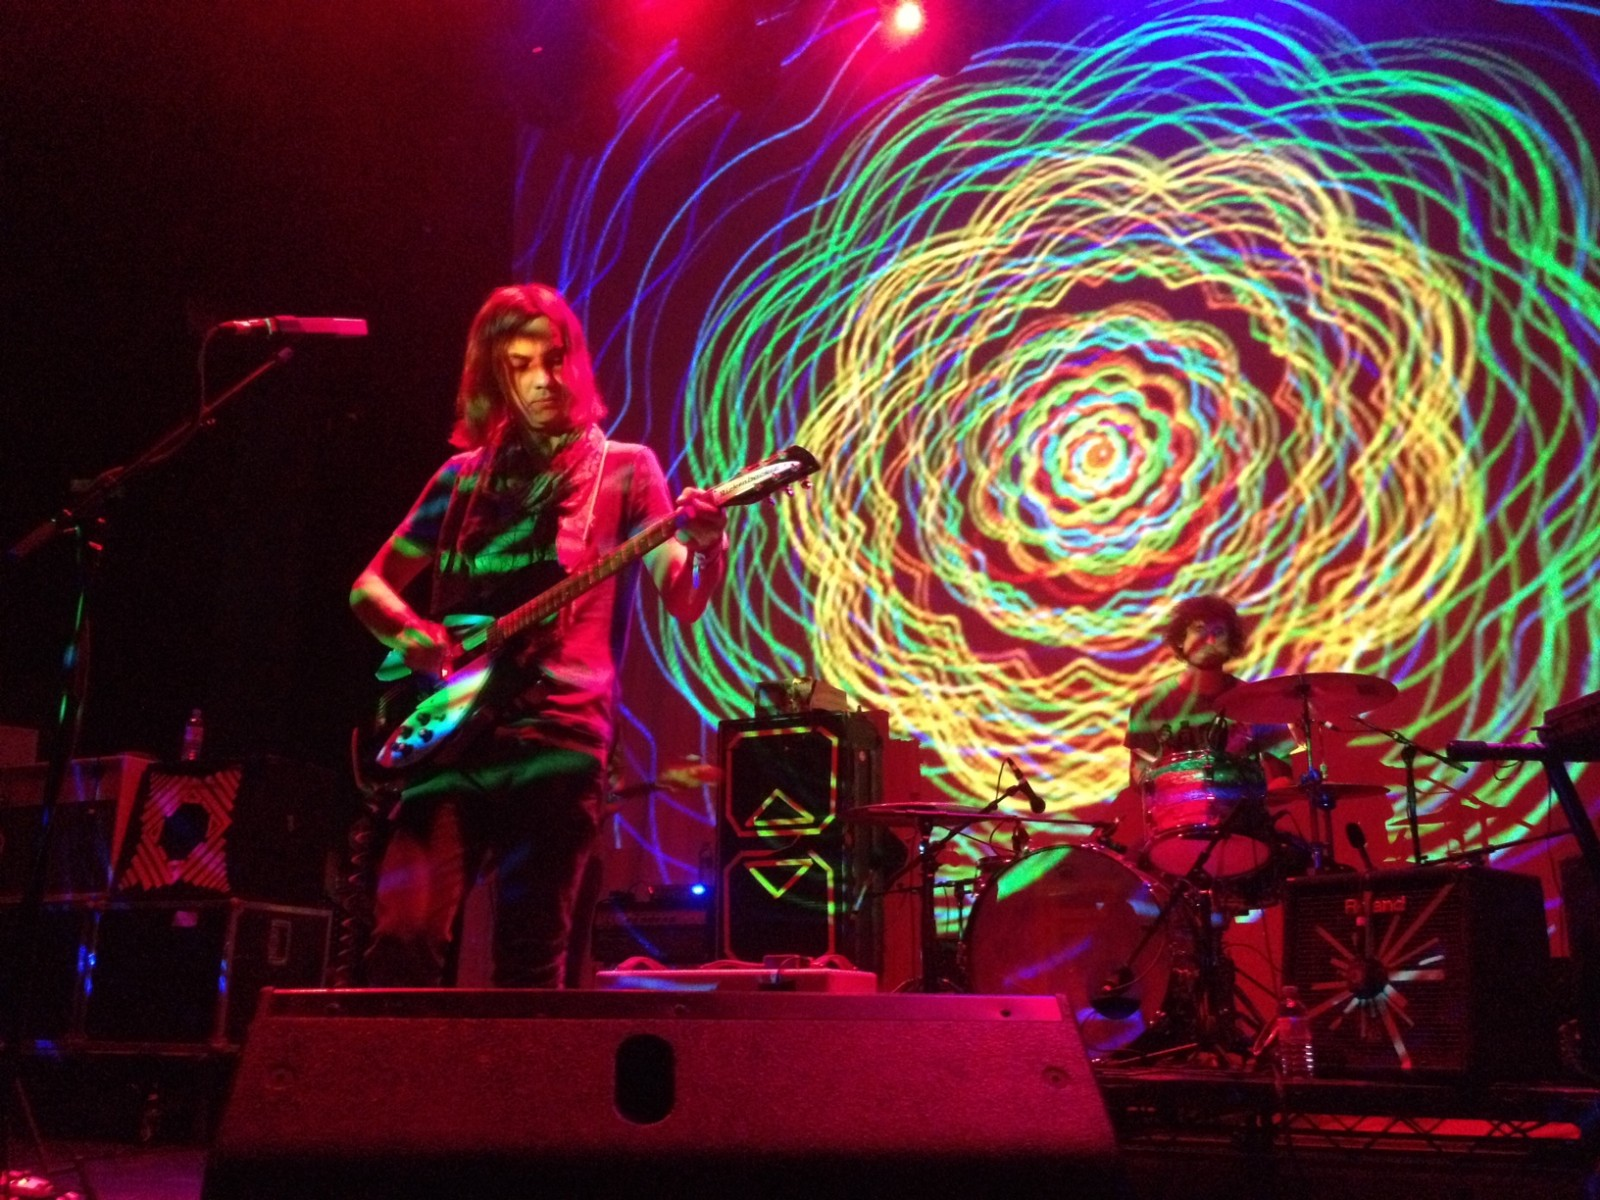 Gig Review Tame Impala At Edinburgh Picture House